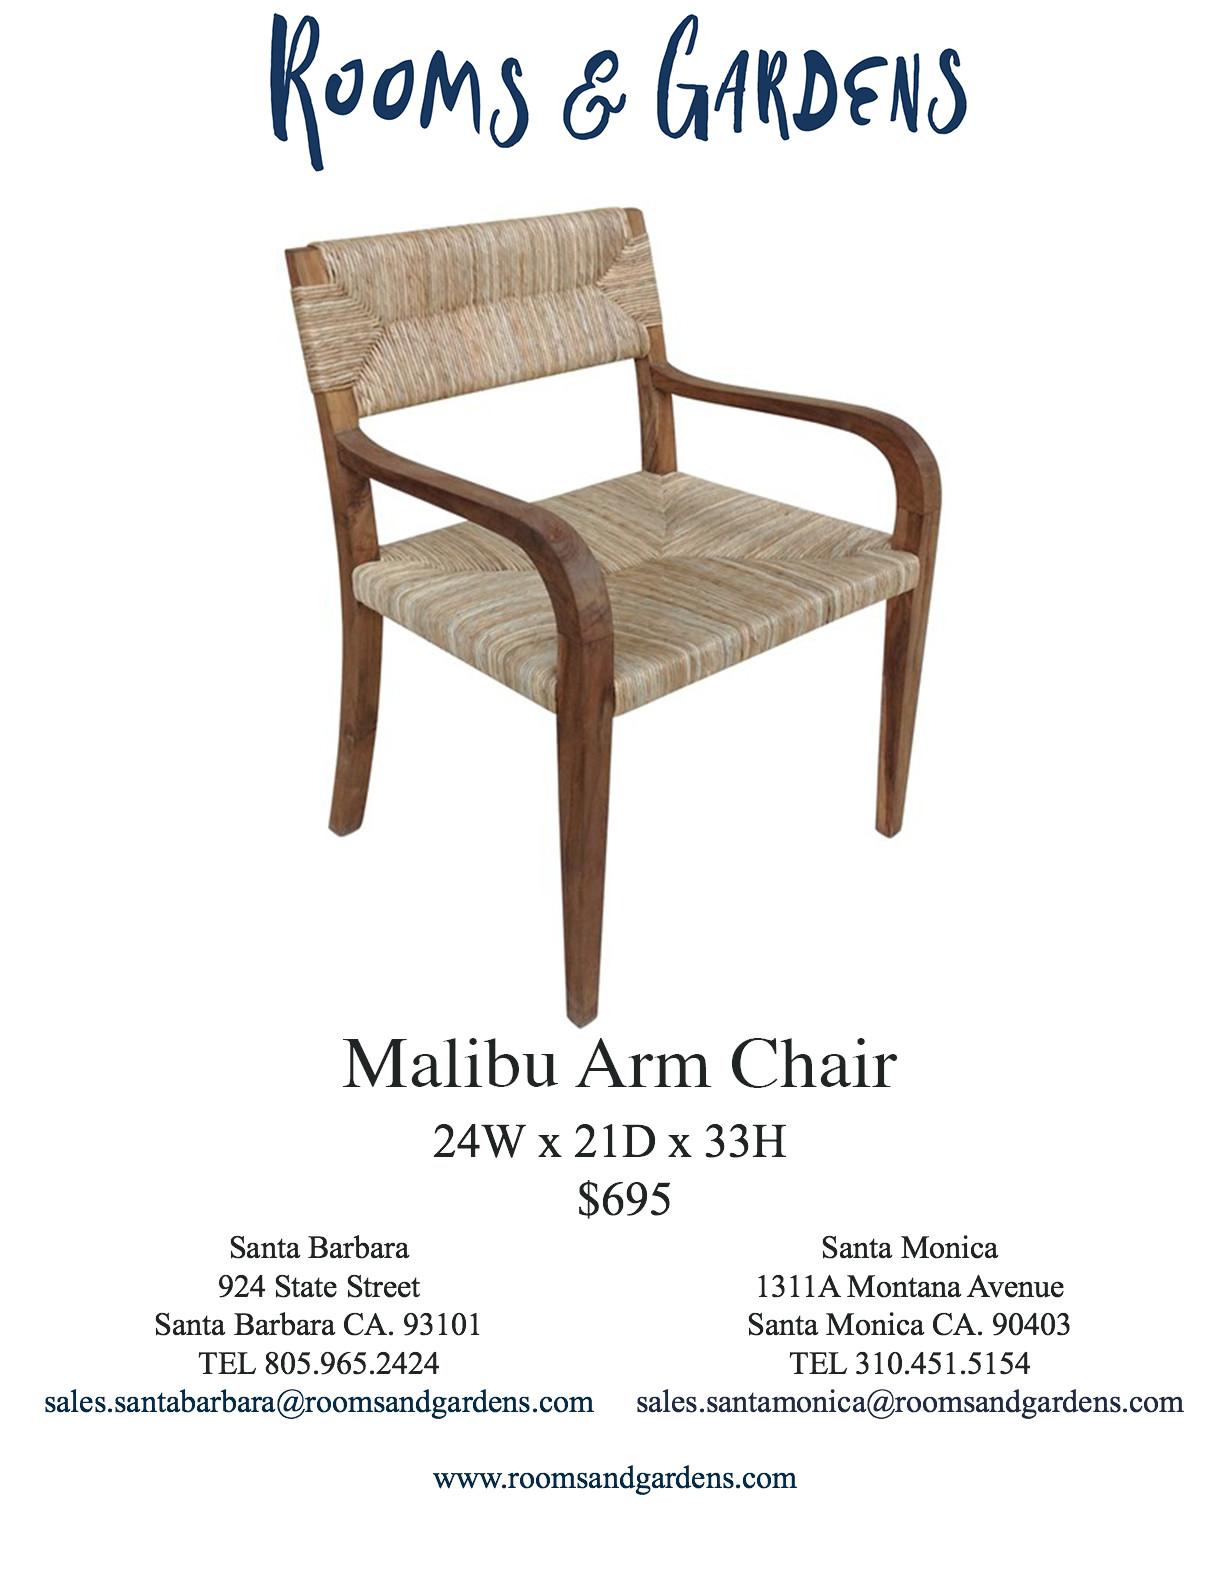 Dining Chairs — Rooms & Gardens